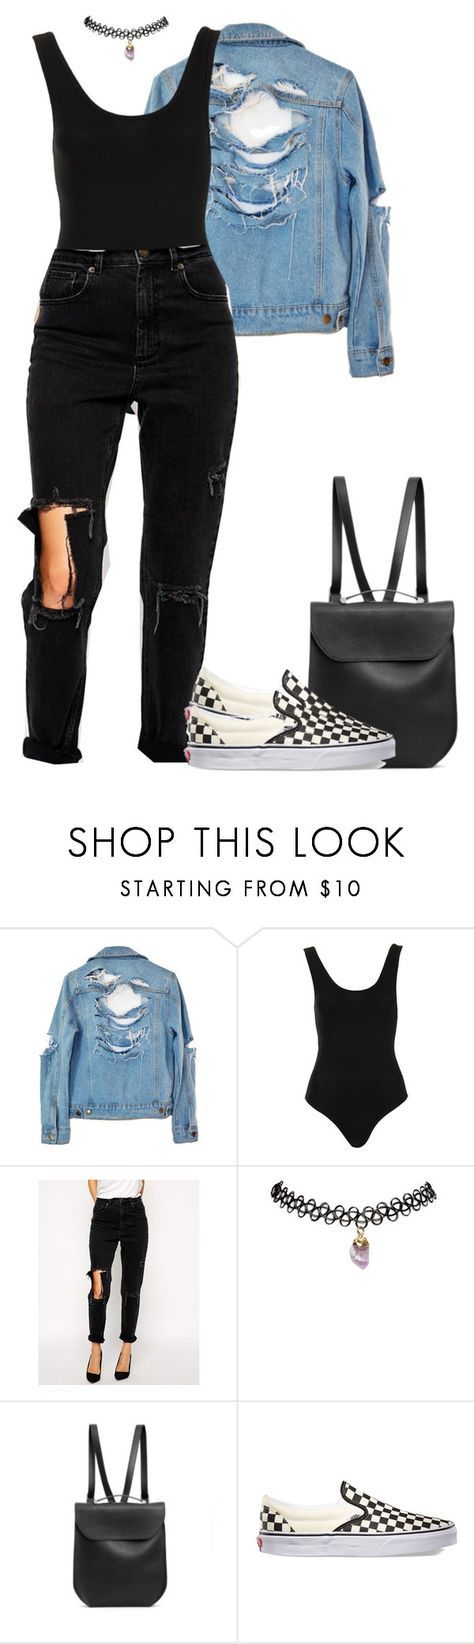 """""""Untitled #187"""" by styledbykayj ❤ liked on Polyvore featuring High Heels Suicide, Topshop, ASOS, Wet Seal, GRETCHEN and Vans"""